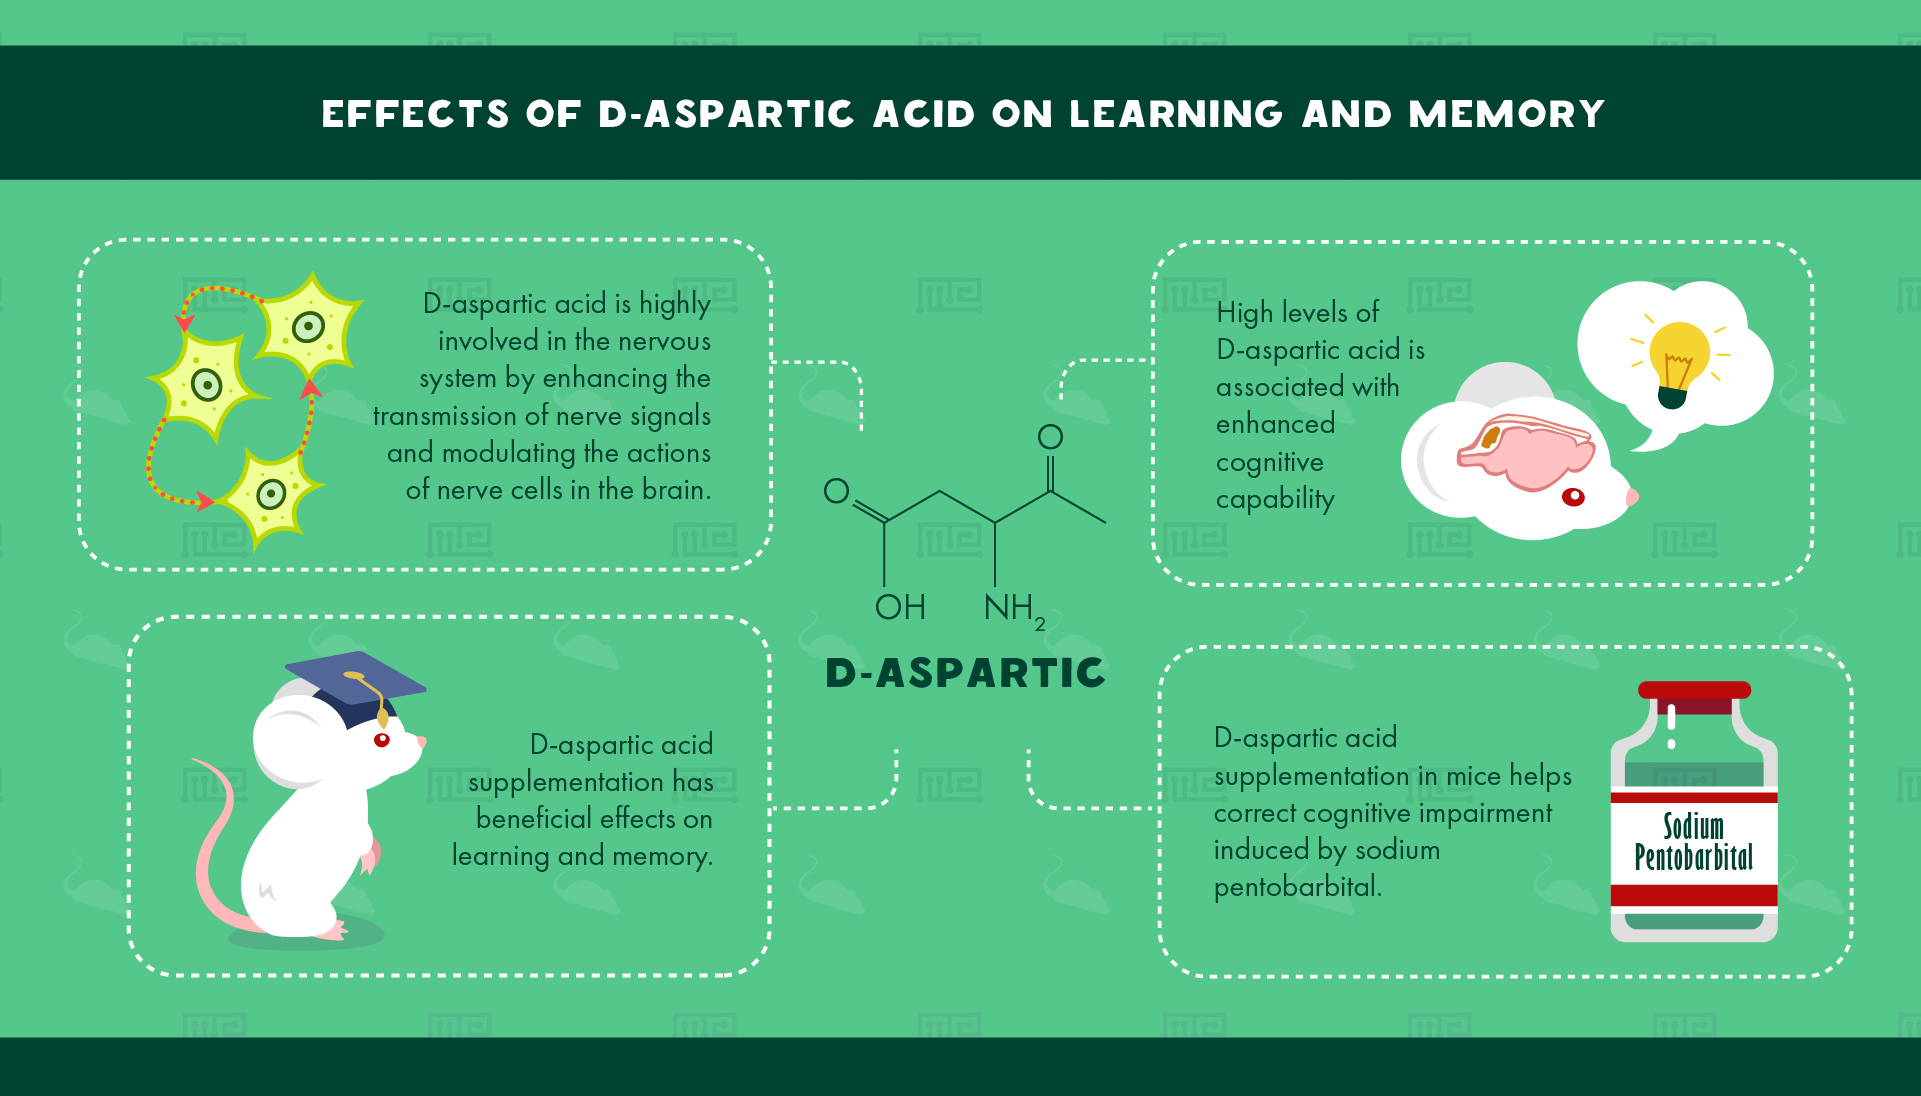 Effects of D-Aspartic Acid on Learning and Memory